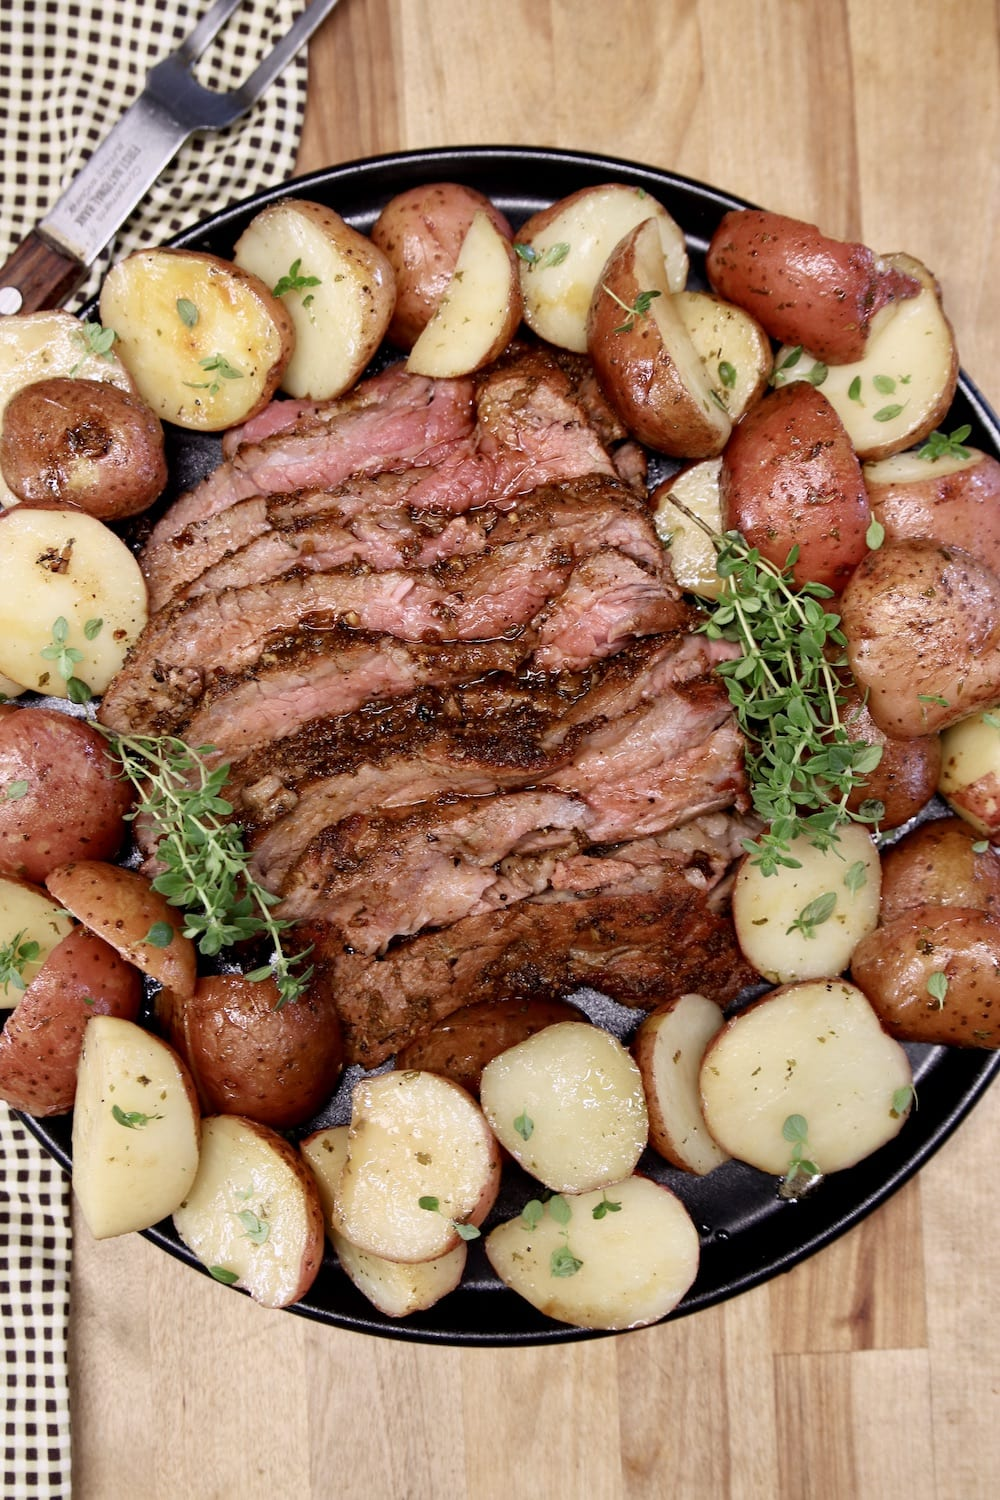 Grilled tri tip steak, sliced on a platter with potatoes